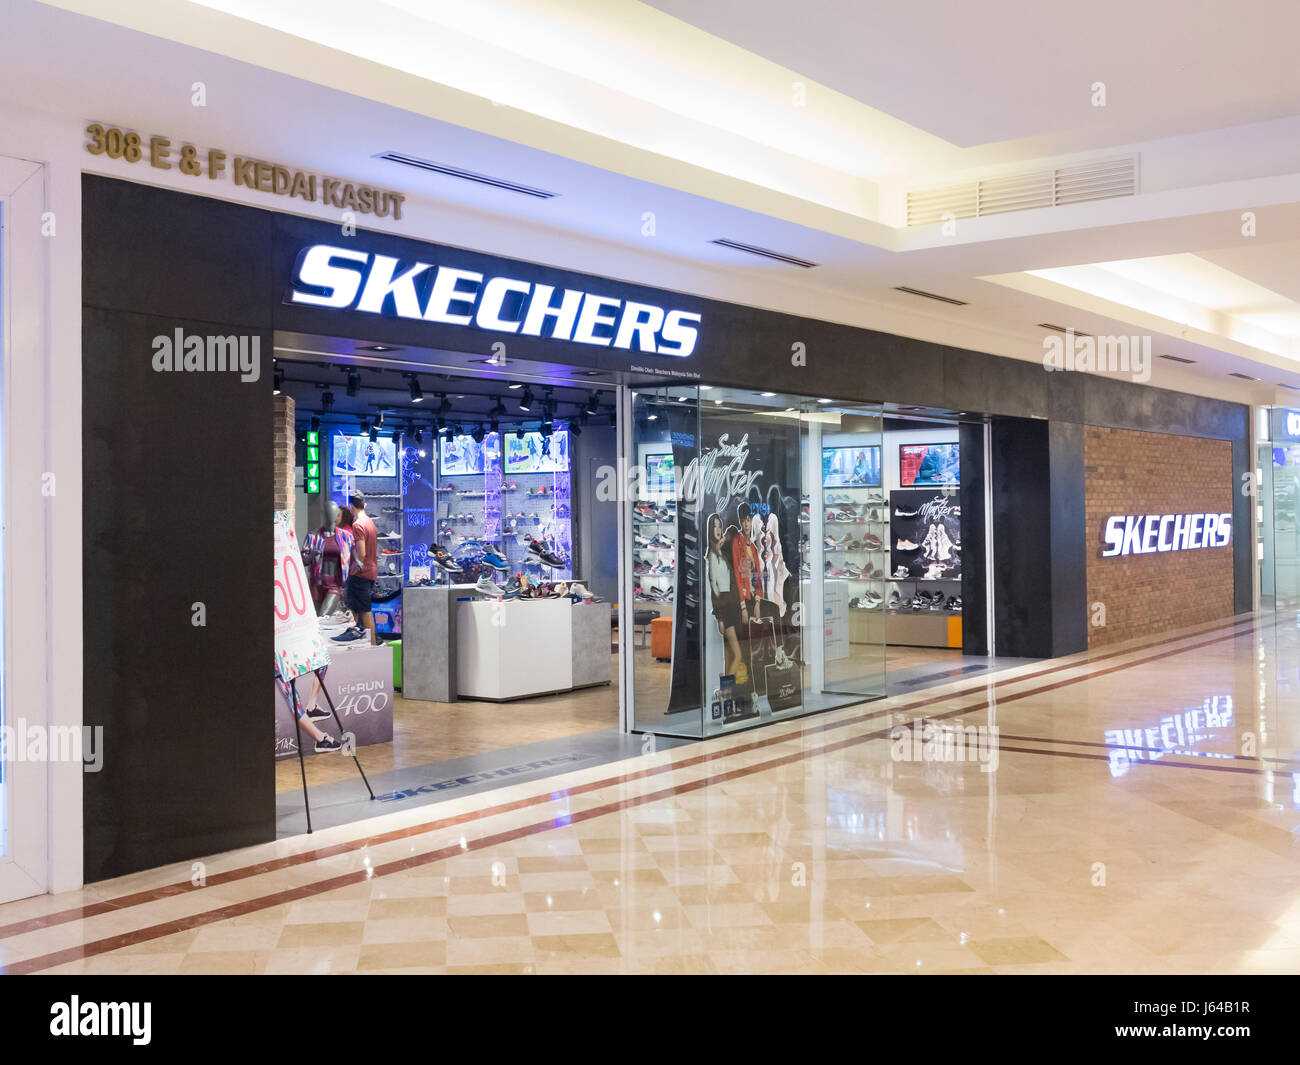 tempo No pretencioso hablar  Skechers High Resolution Stock Photography and Images - Alamy